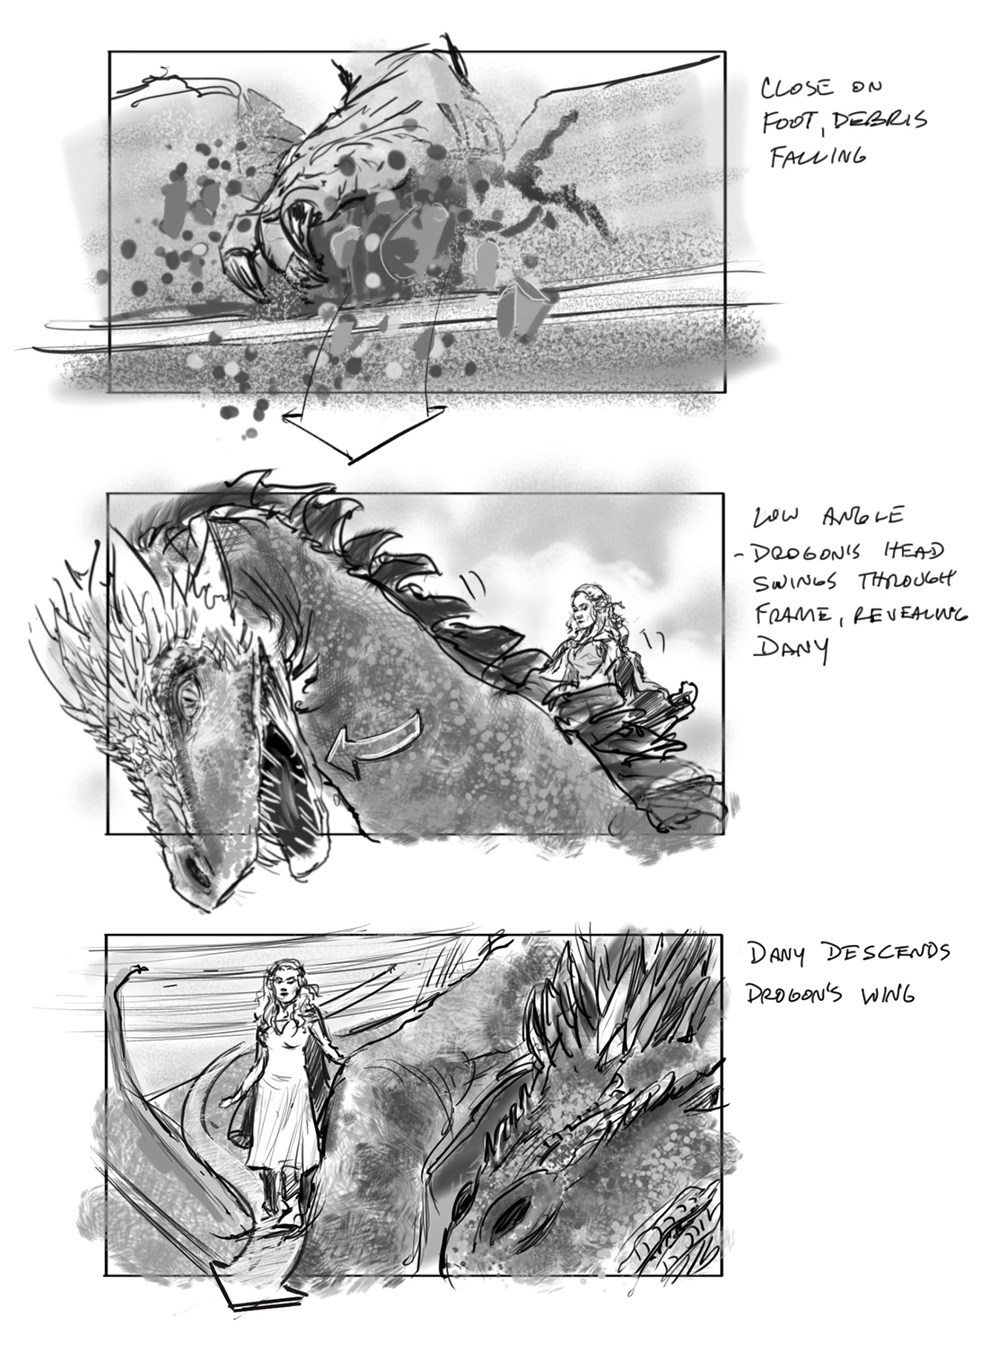 mgot_s7_ep07_storyboards_dragonpit_02.jpg